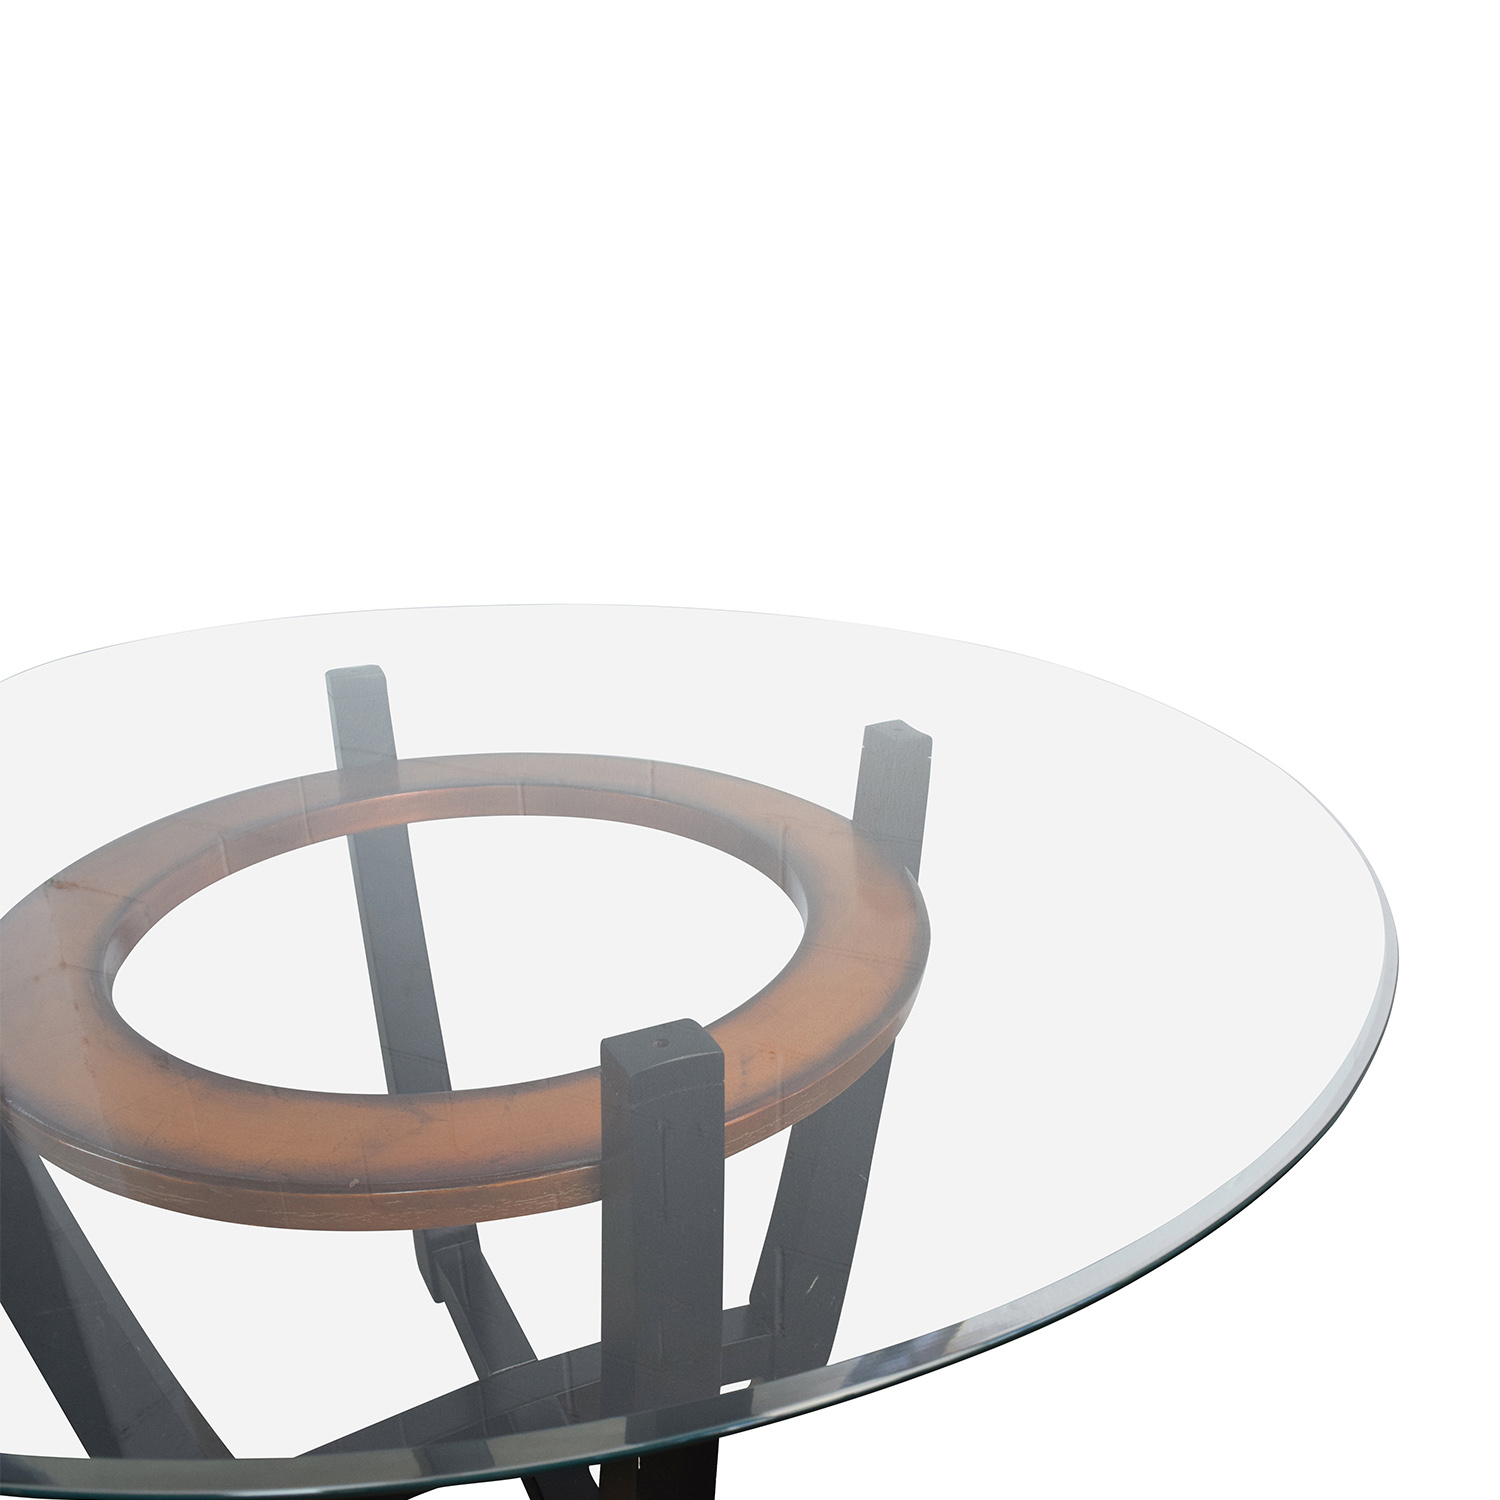 88 OFF Macys Macys Elation Round Glass Dining Table  : second hand macys elation round glass dining table from furnishare.com size 1500 x 1500 jpeg 233kB